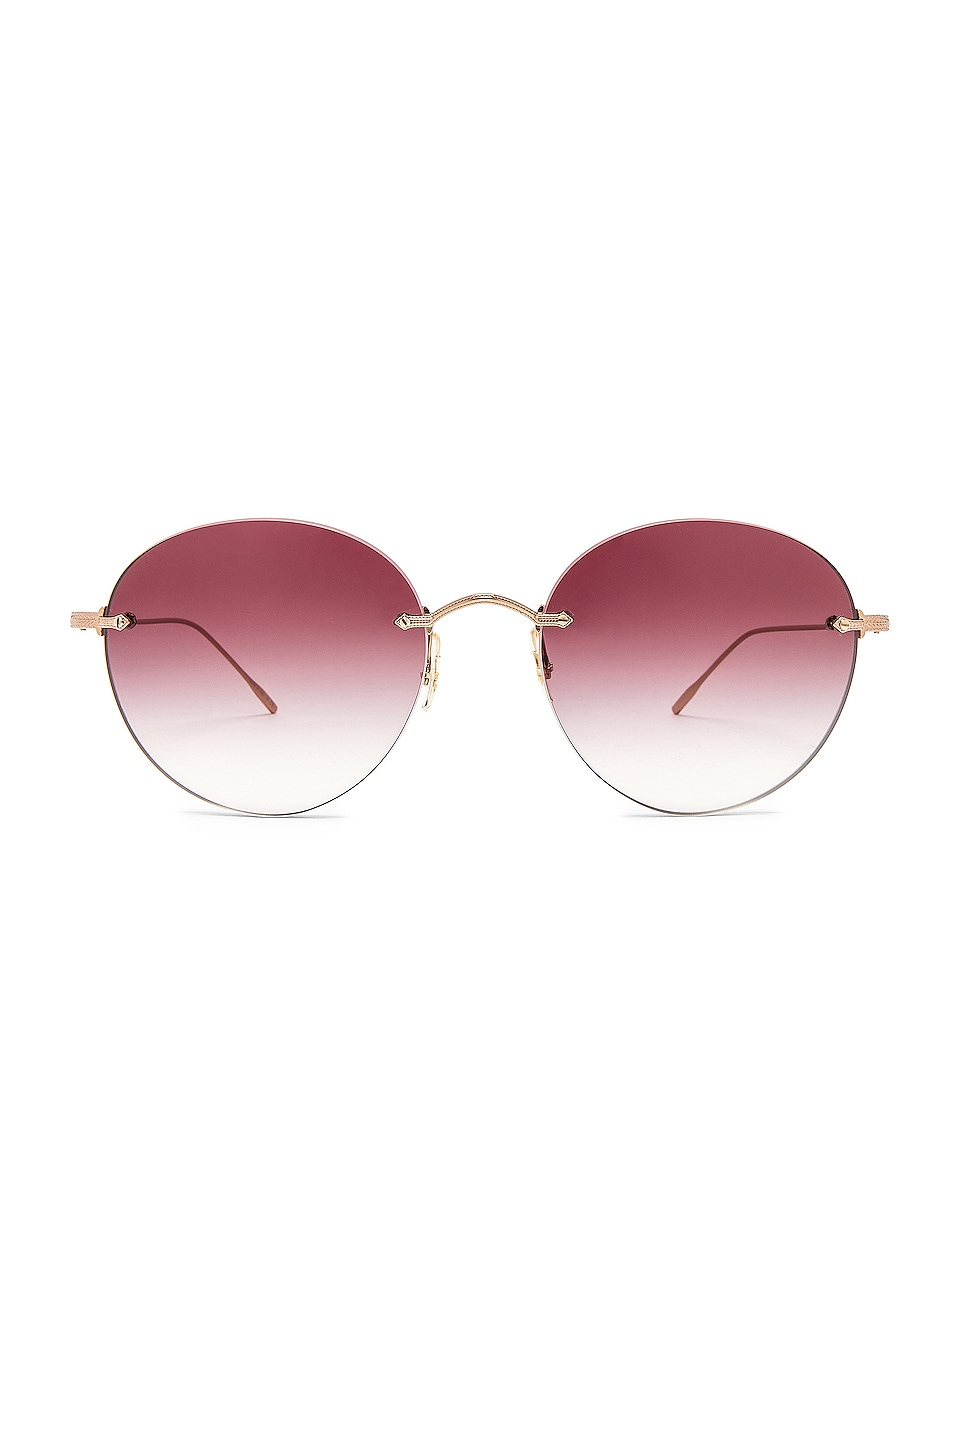 Oliver Peoples Coleina in Rose Gold & Magenta Gradient